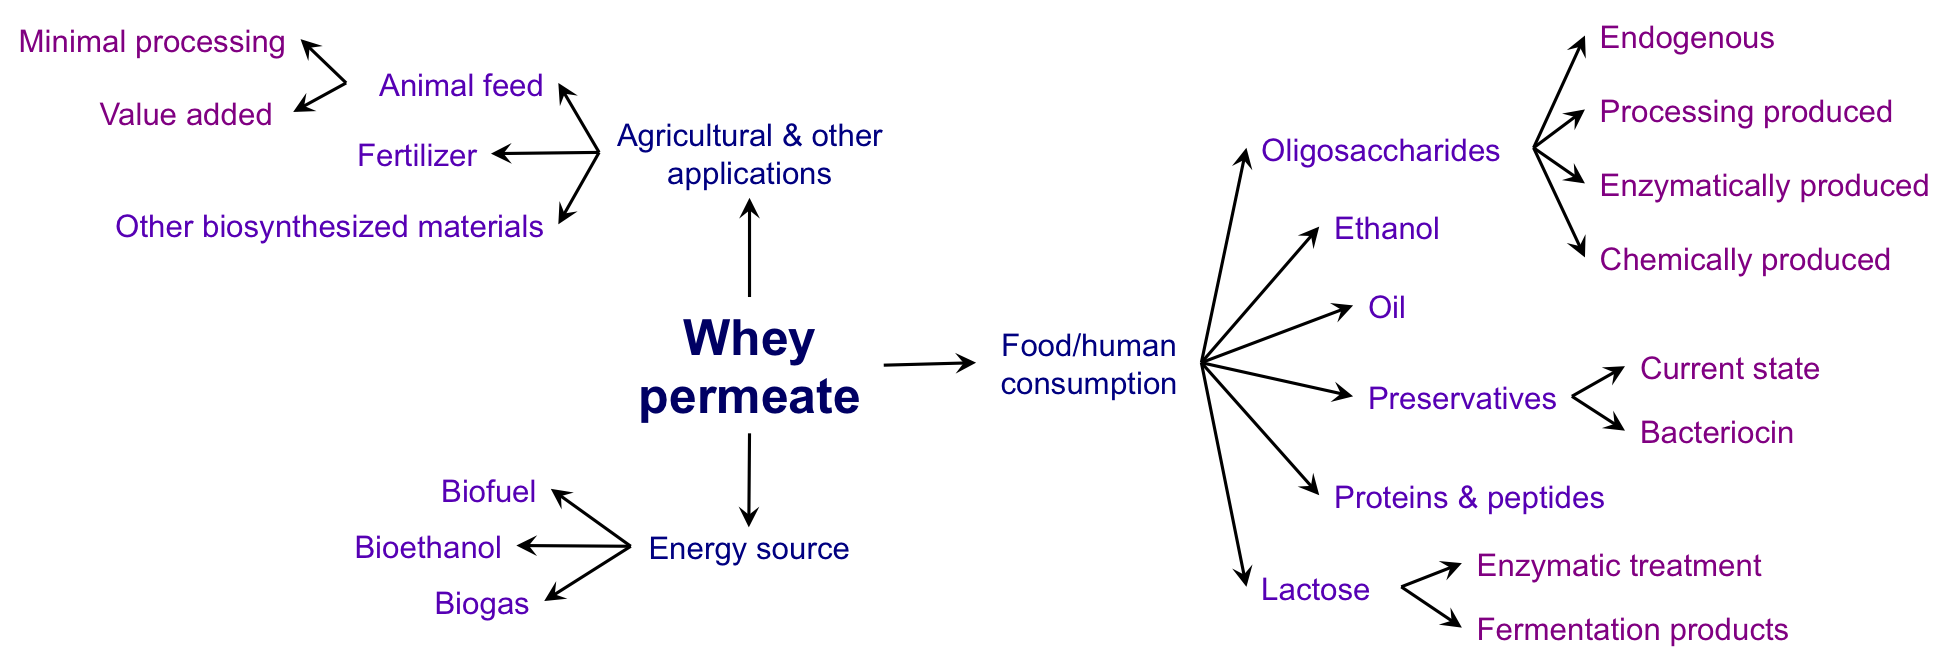 Whey permeate infographic